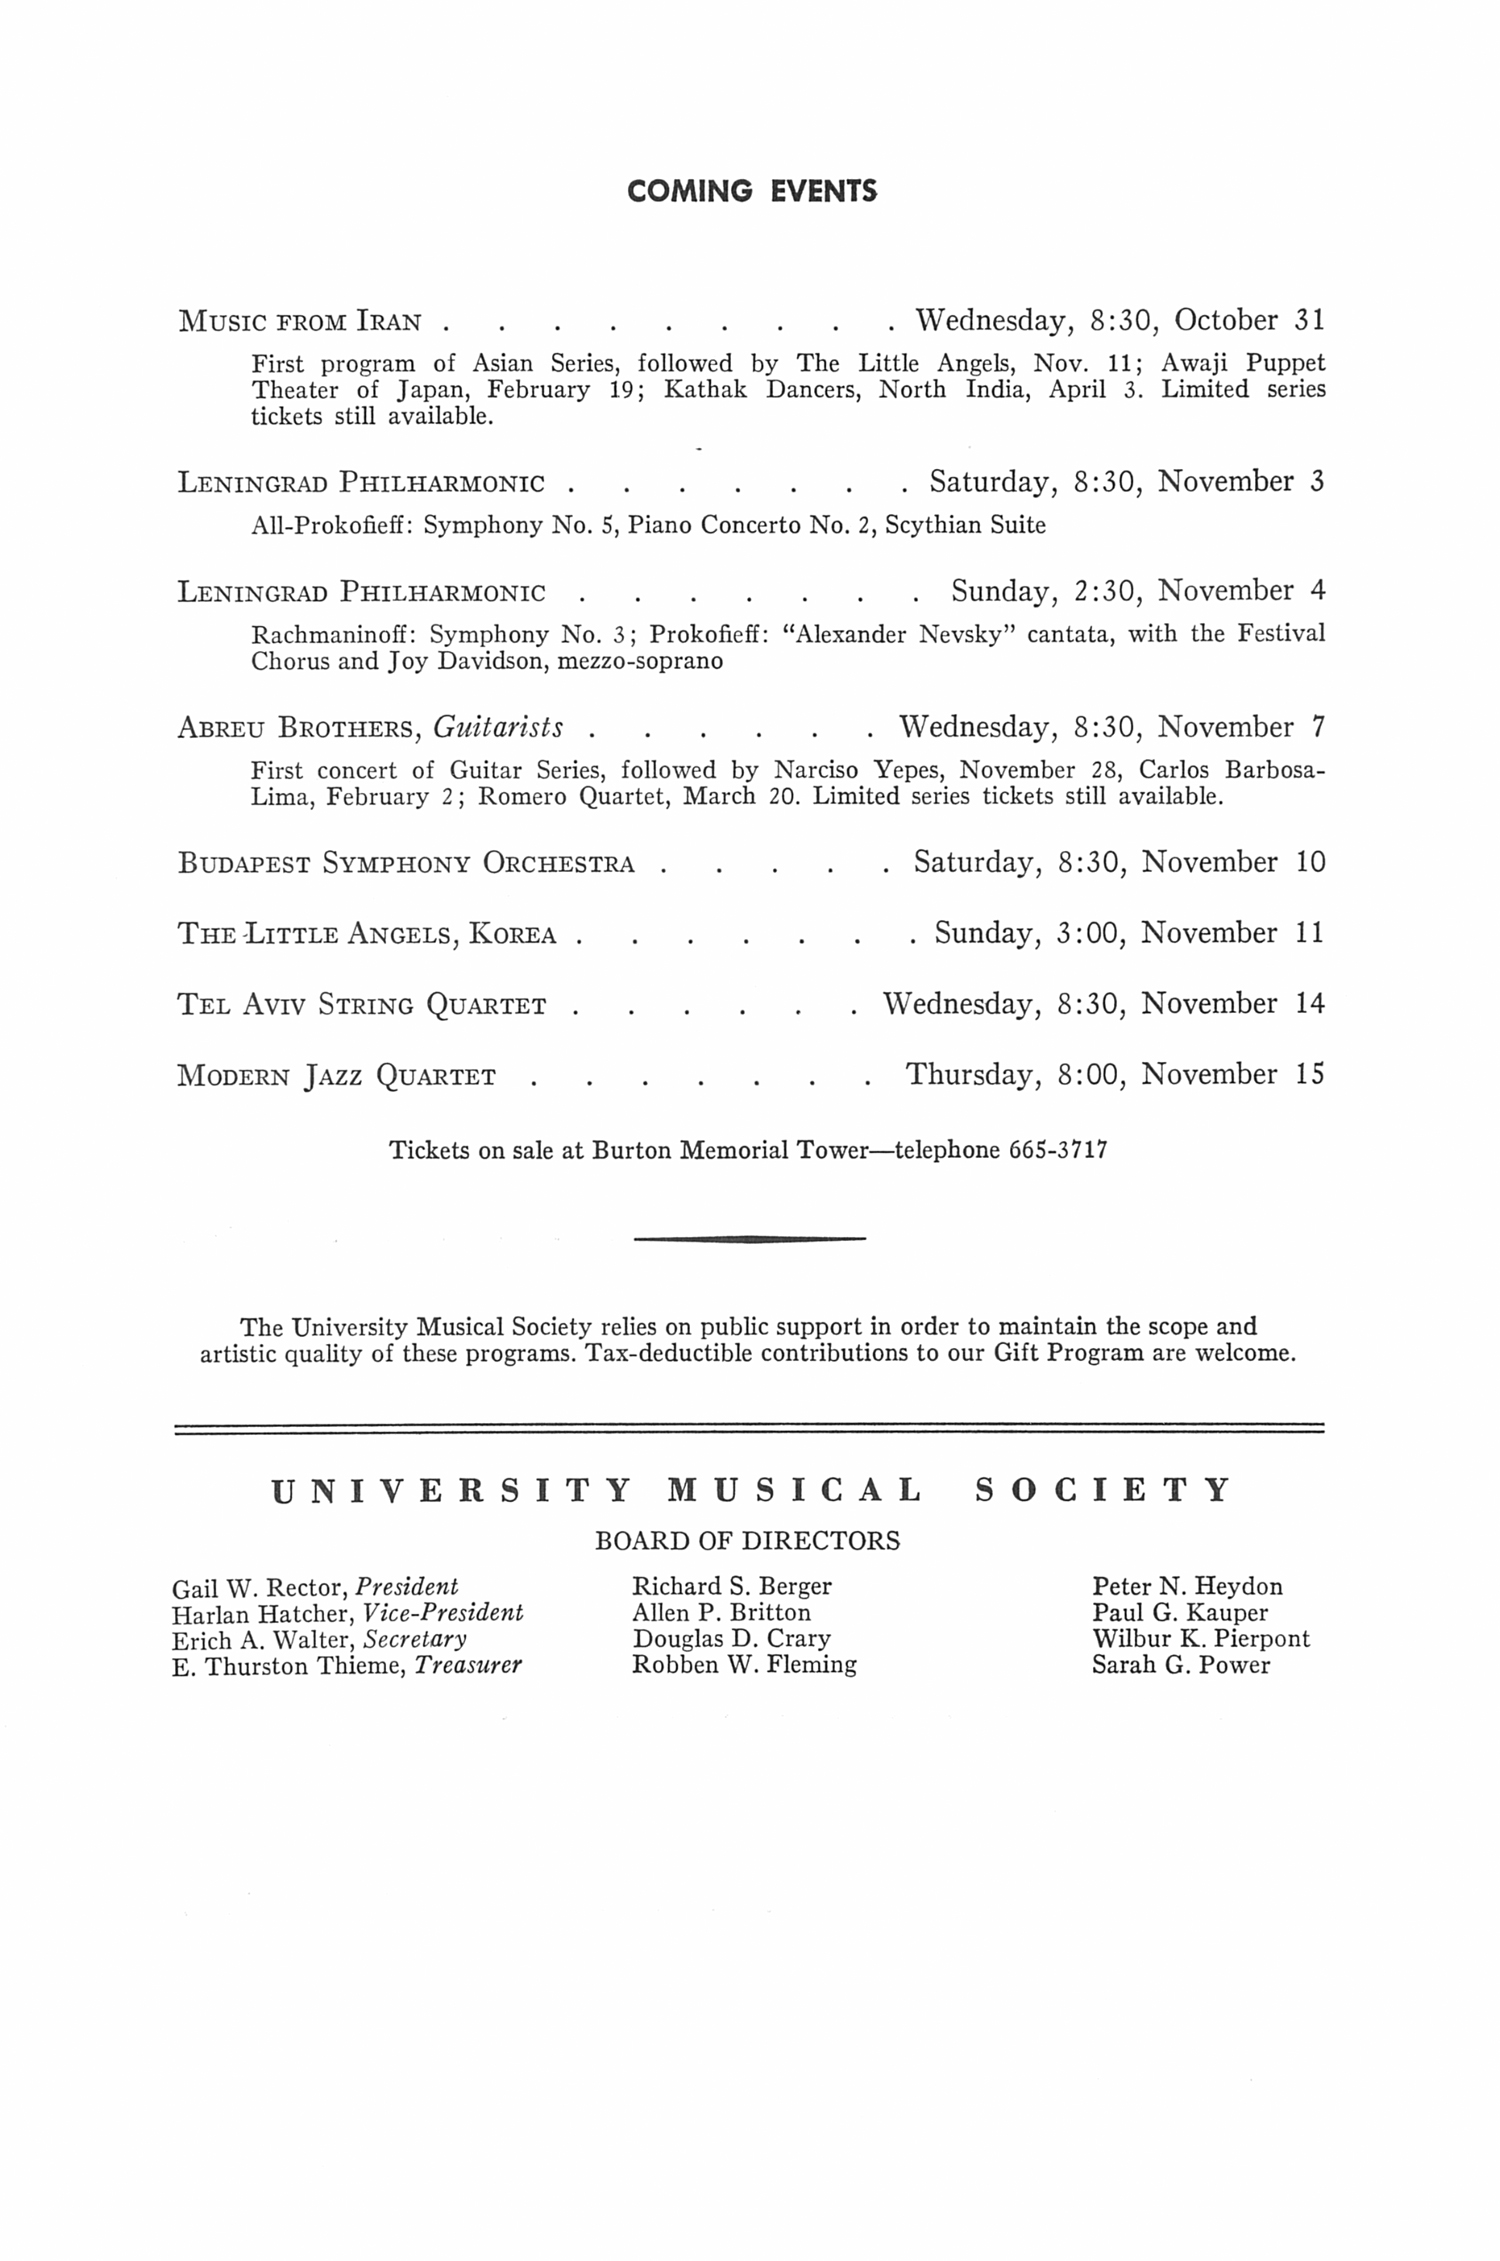 UMS Concert Program, October 28, 1973: Baroque Ensemble, U.s.s.r. --  image